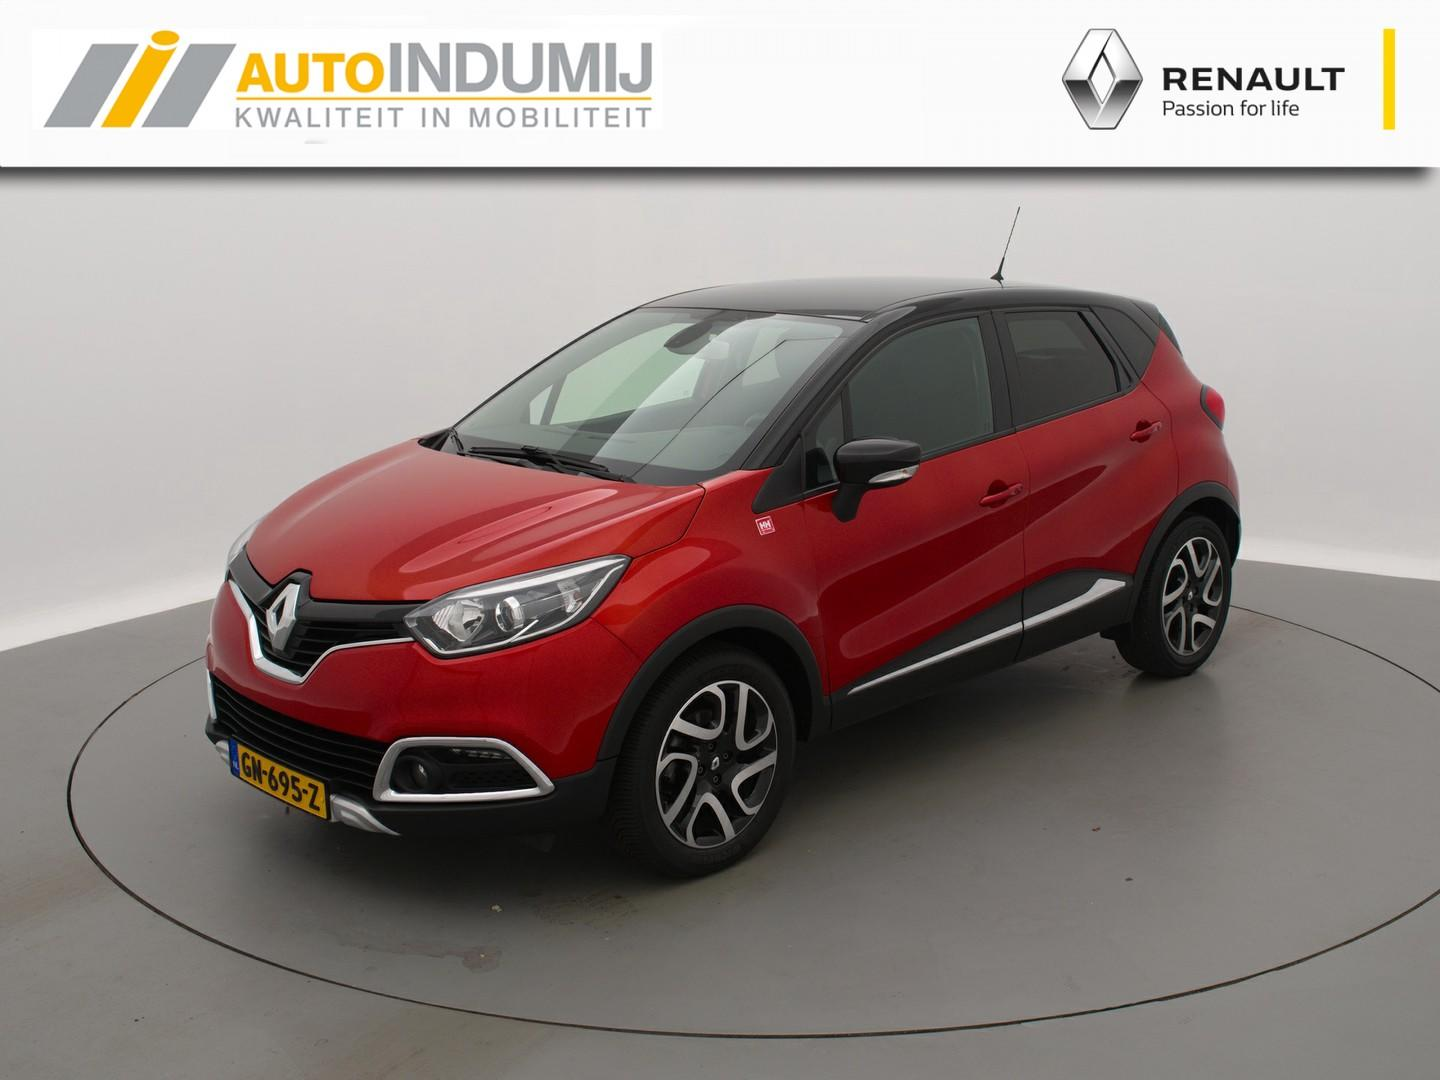 Renault Captur Tce 120 automaat helly hansen / navi / camera / climate control